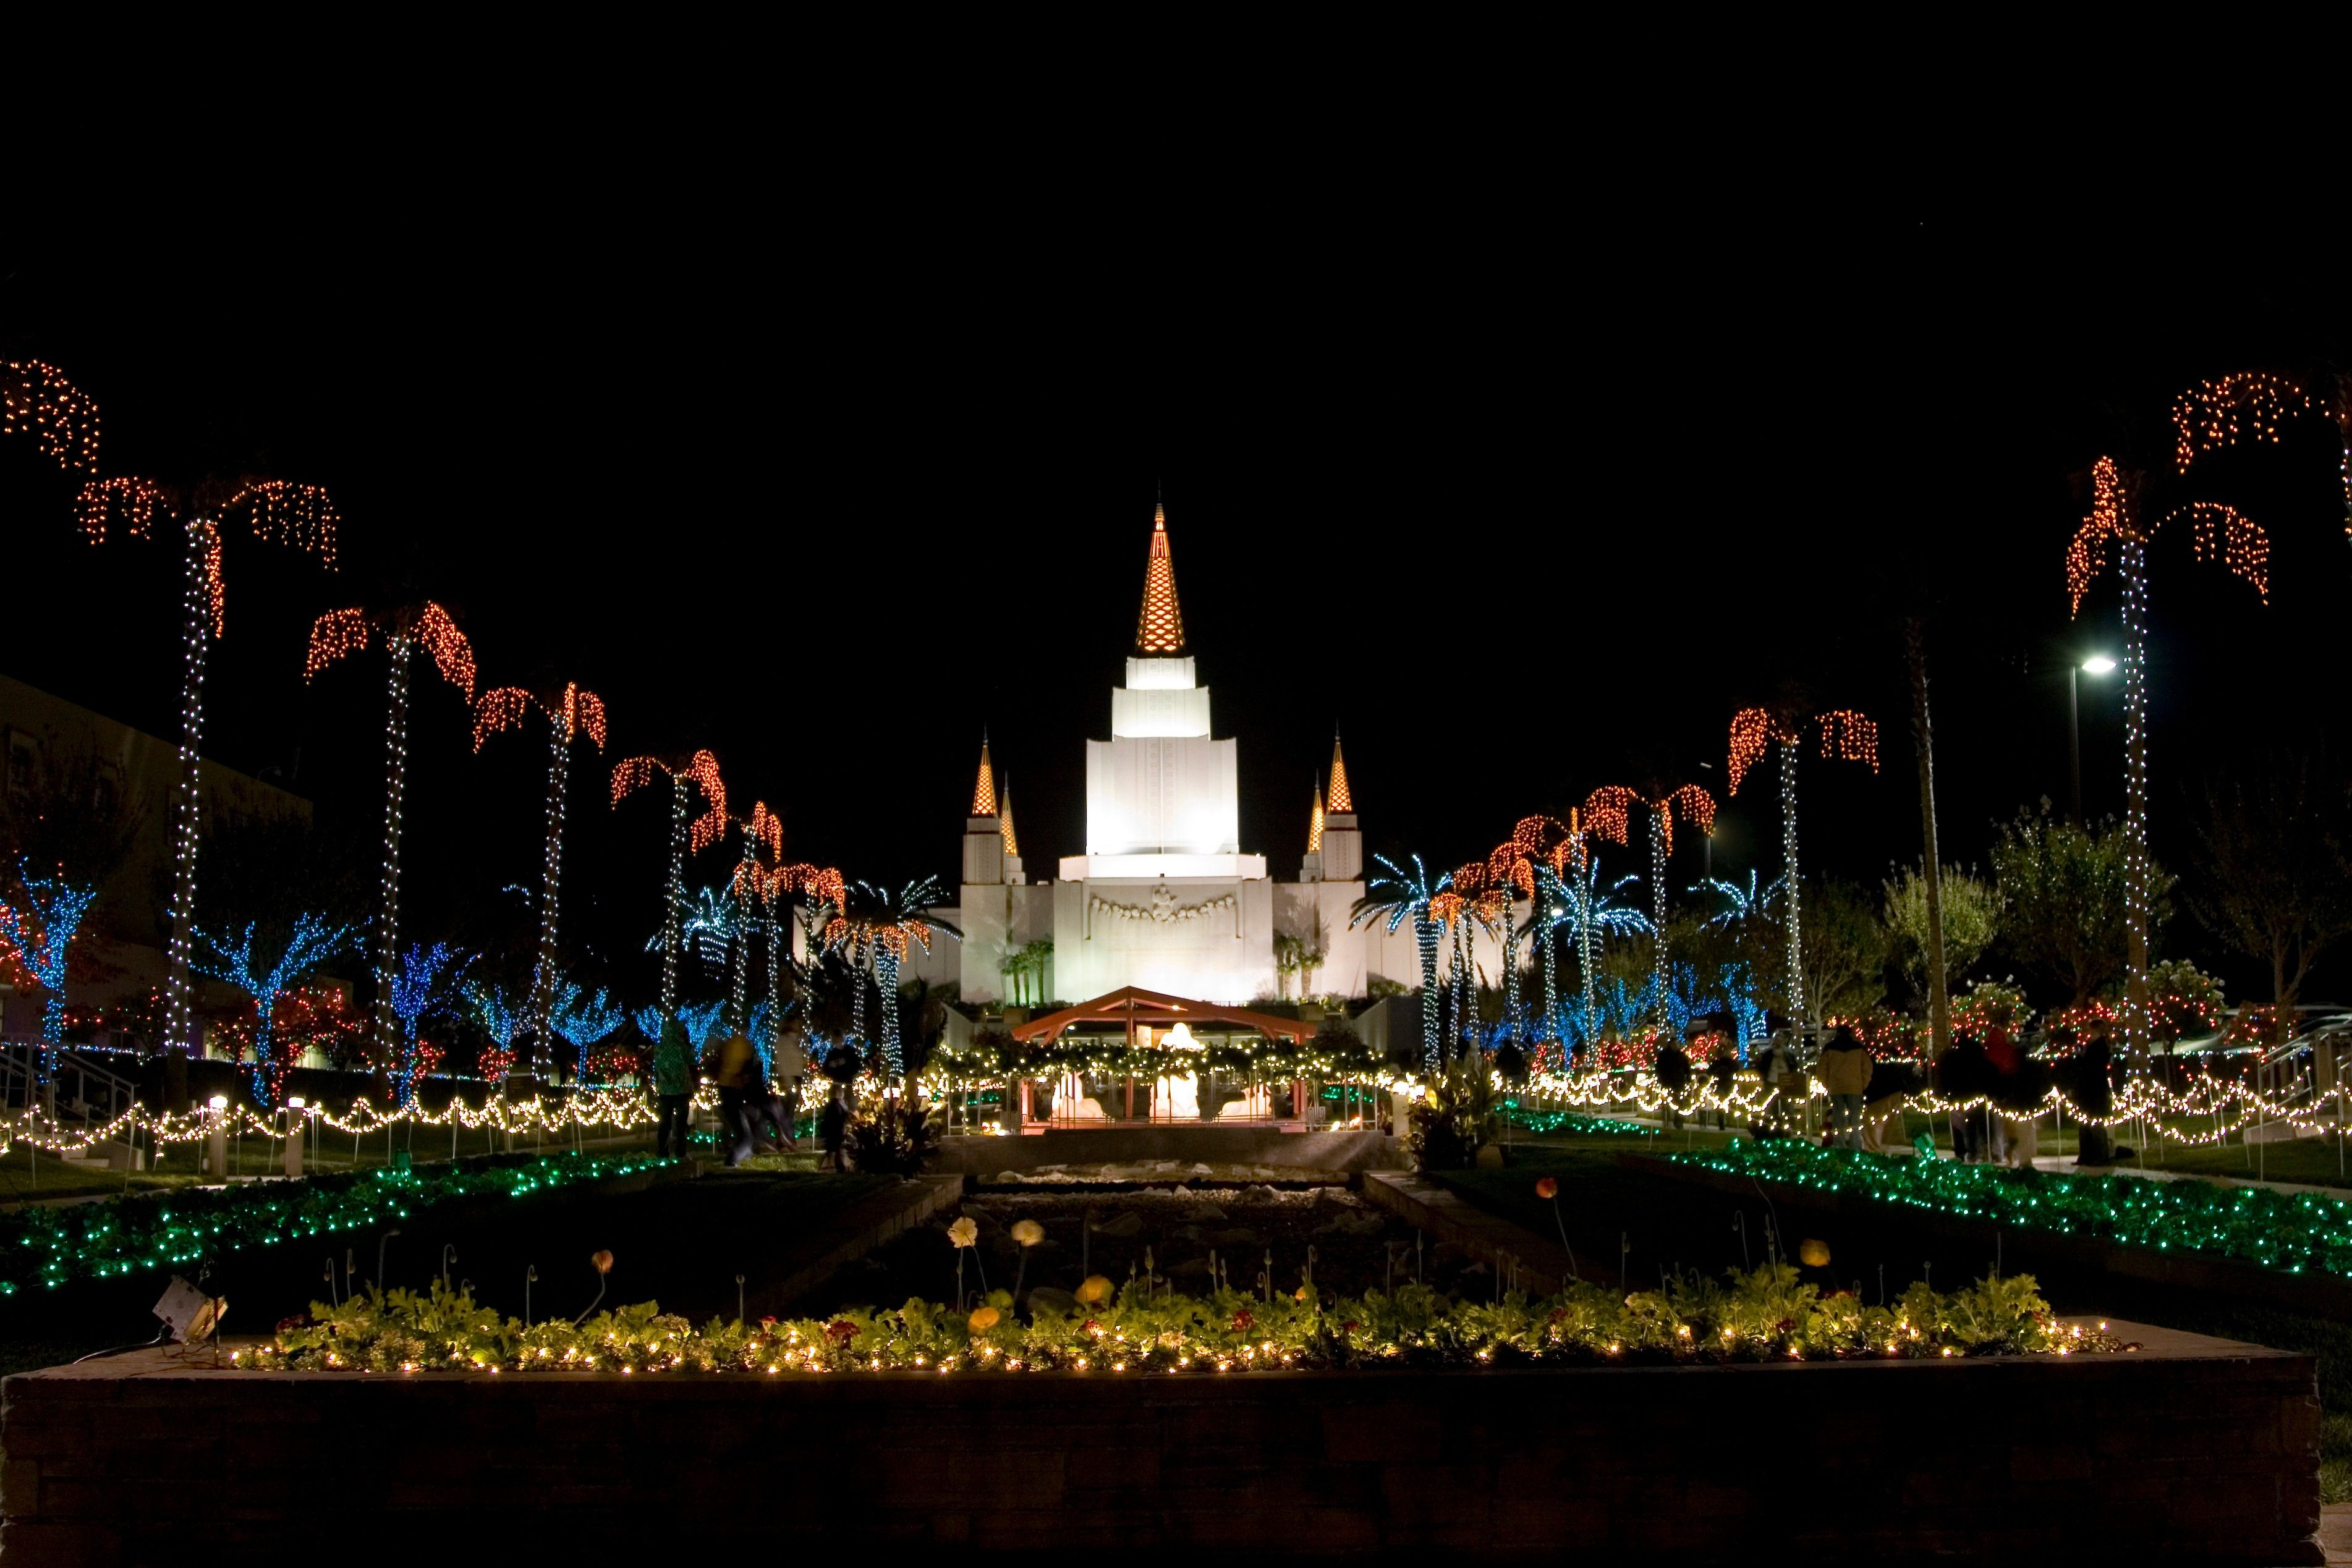 The Oakland California Temple at Christmas, including scenery.